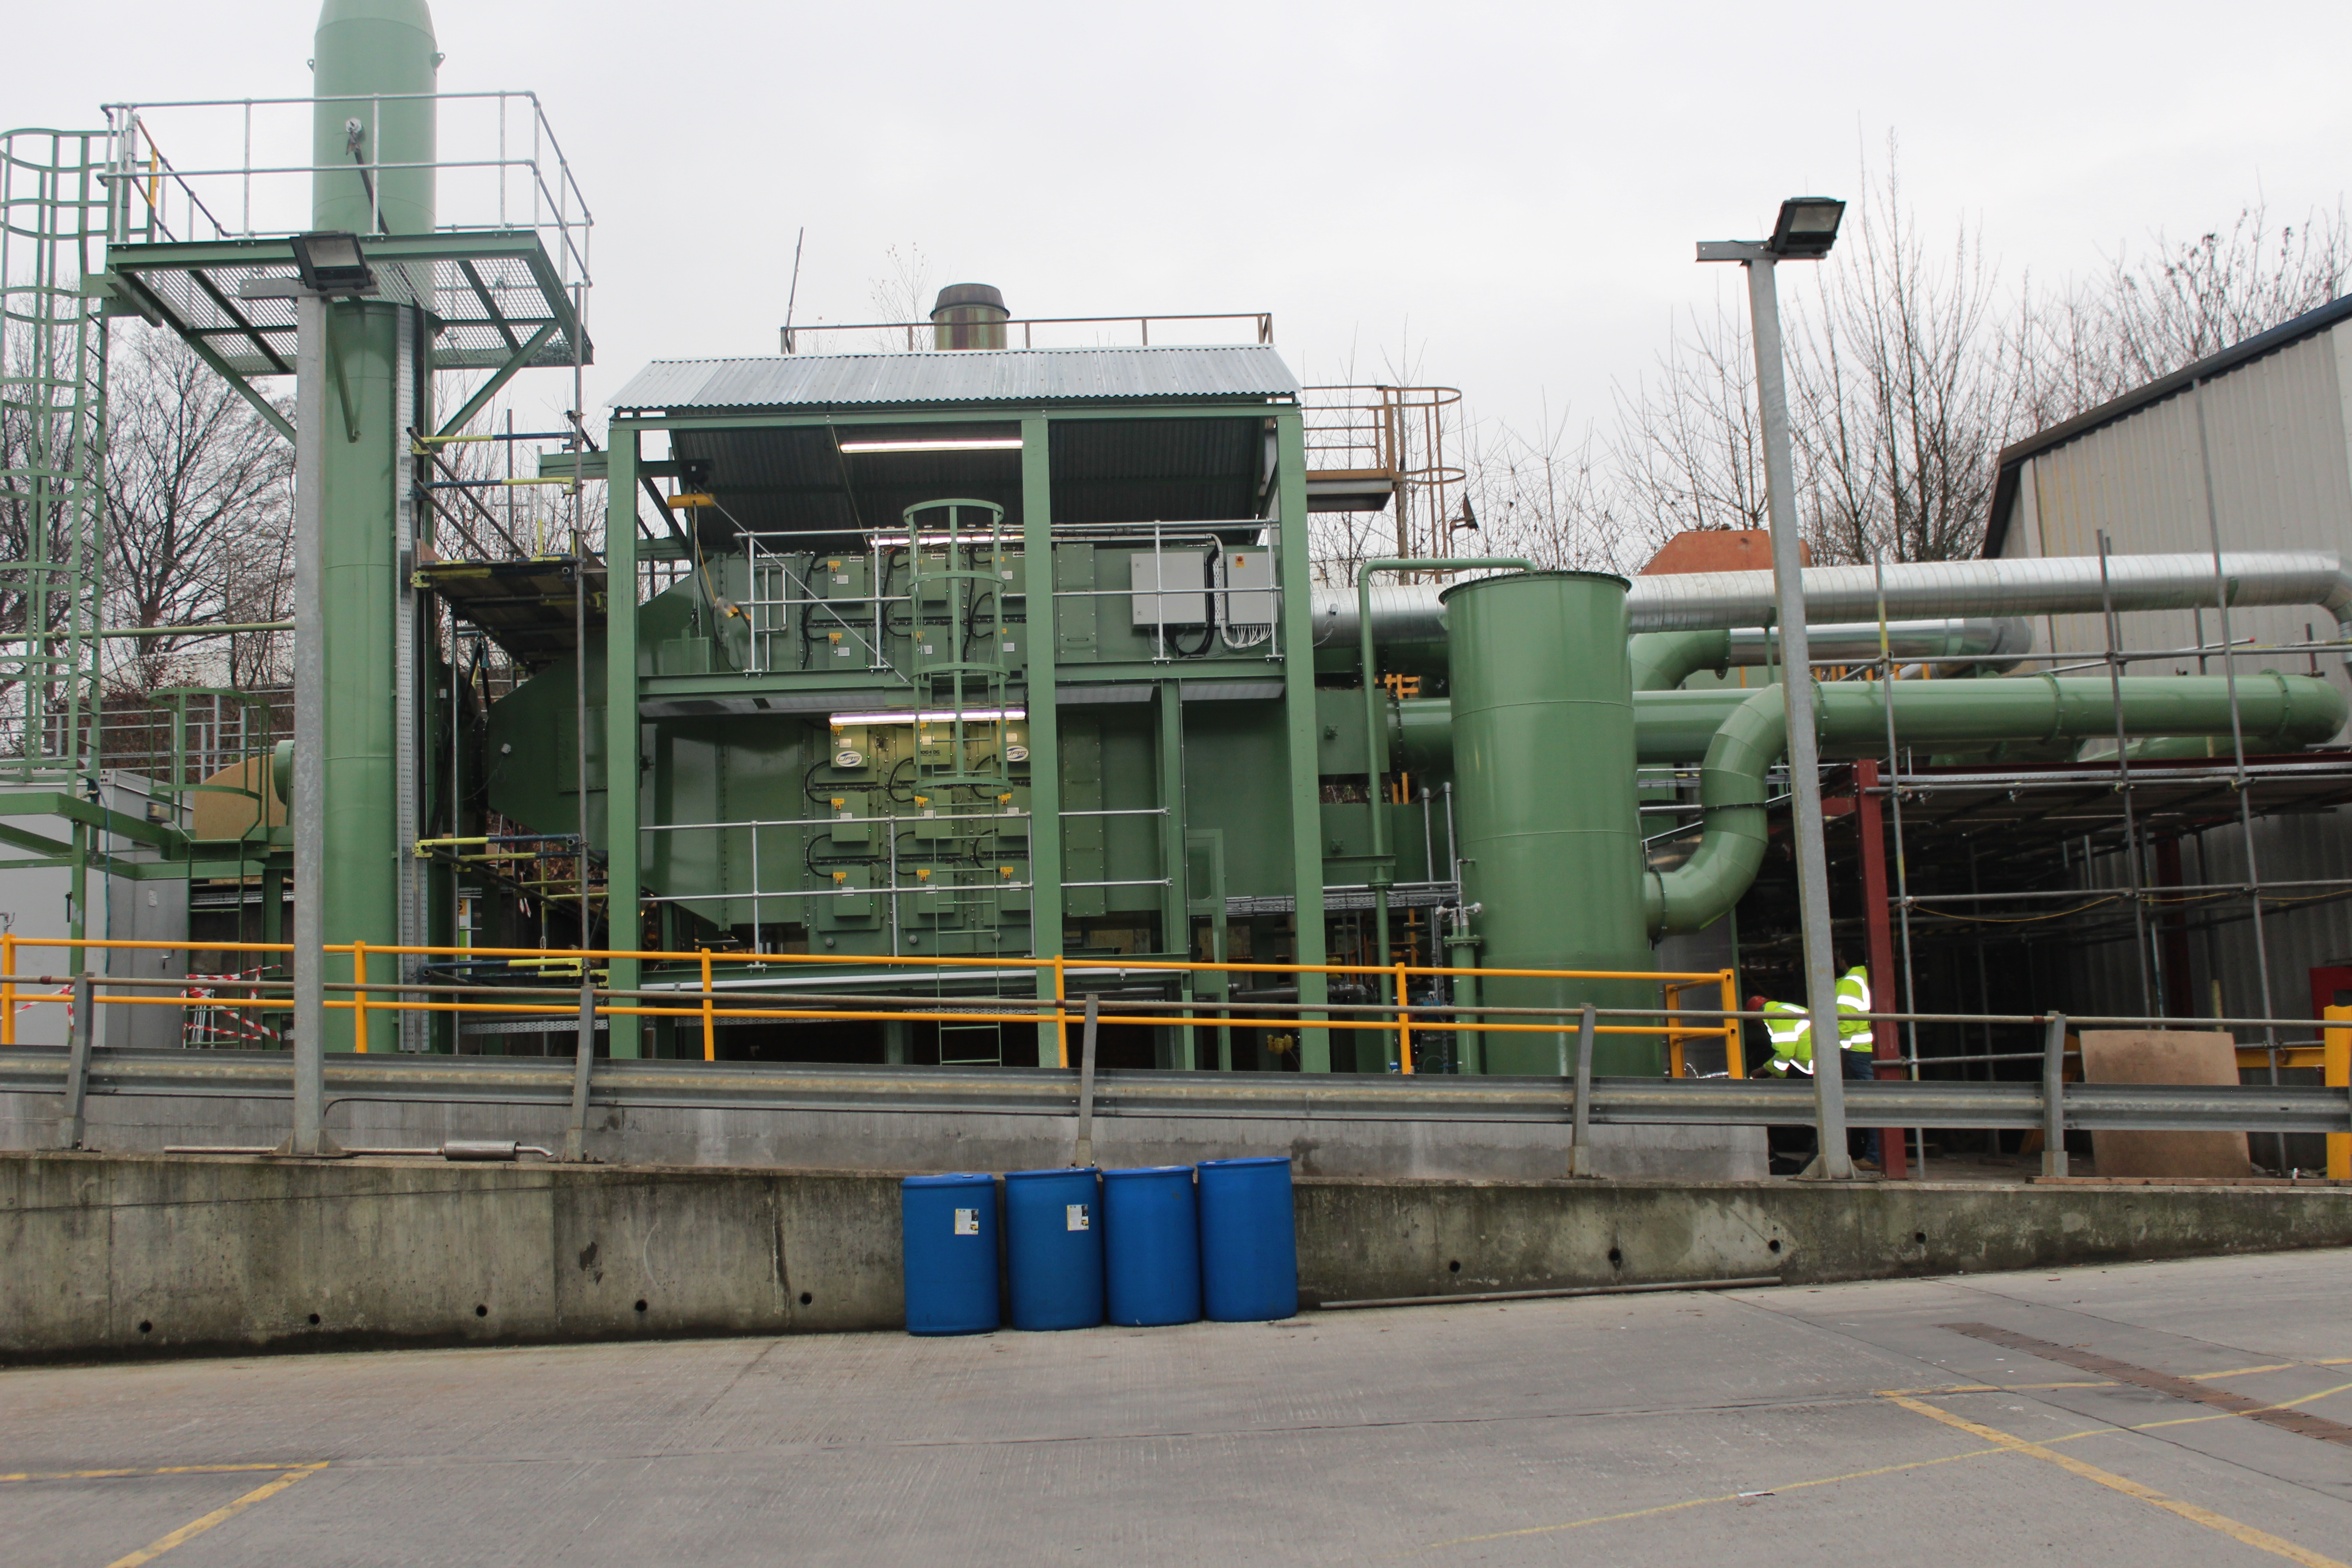 Automatic self-cleaning electrostatic precipitator system reduces costs and beats emissions standards for Polyflor